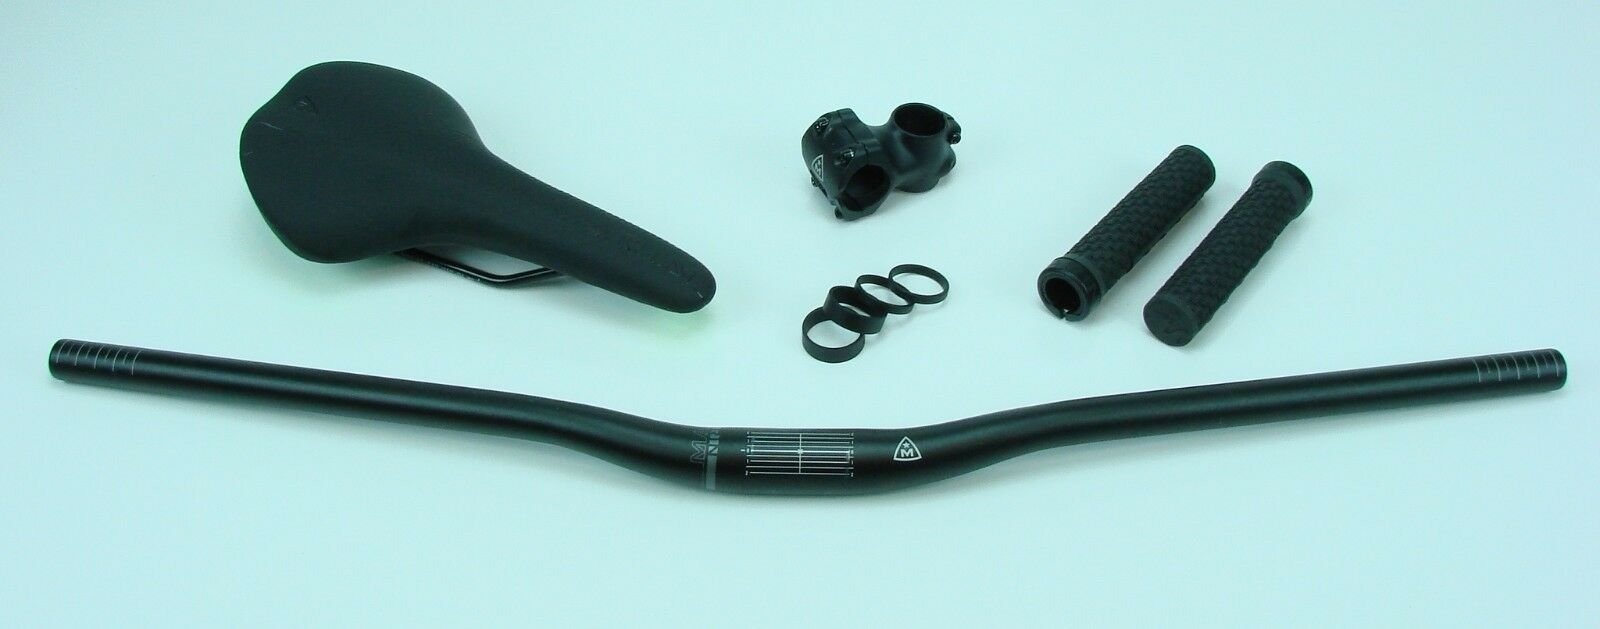 Marin Handlebar, Stem, Headset spacers, Grips and Saddle